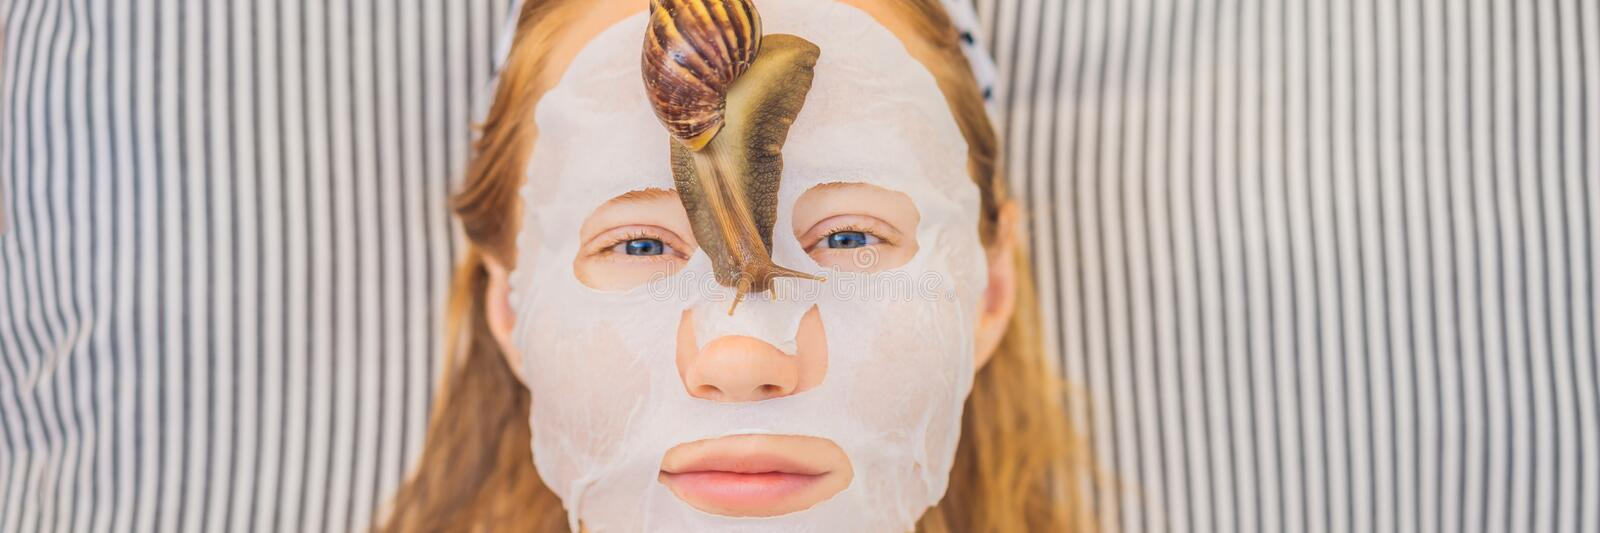 Young woman makes a face mask with snail mucus. Snail crawling on a face mask BANNER, LONG FORMAT. Young woman makes a face mask with snail mucus. Snail crawling royalty free stock photography